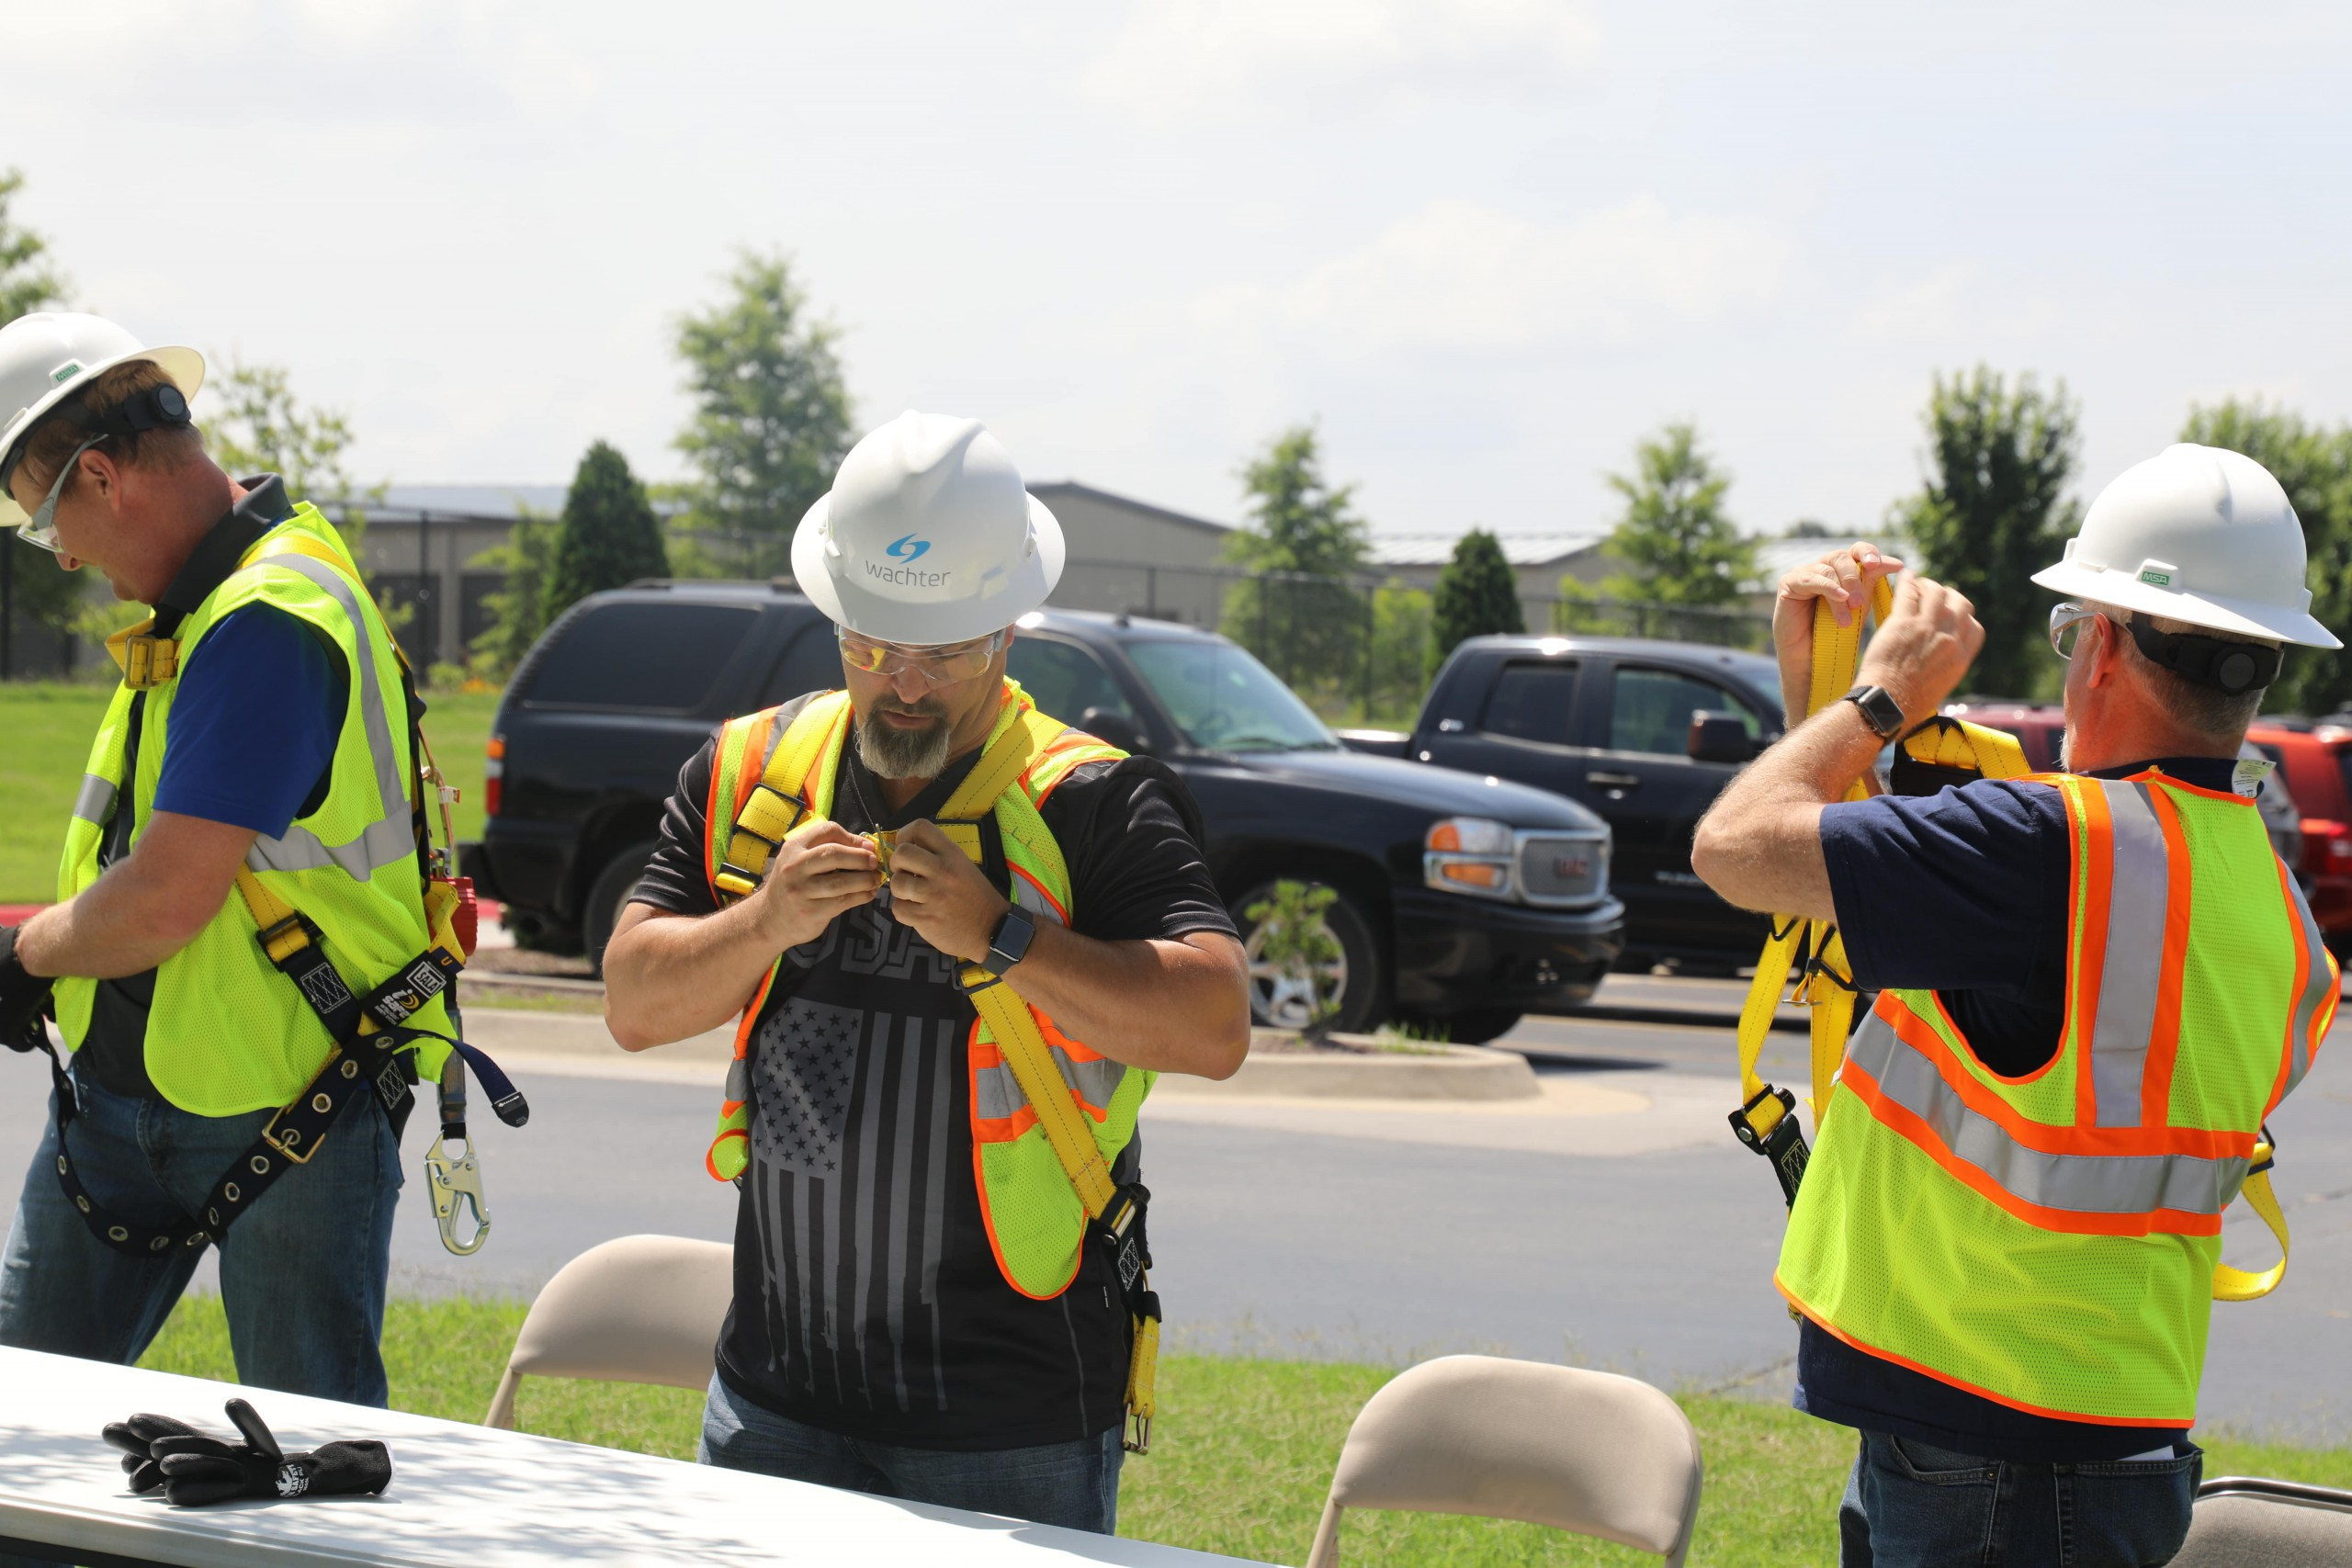 Racing each other during the PPE Race at the Wachter Safety Fair